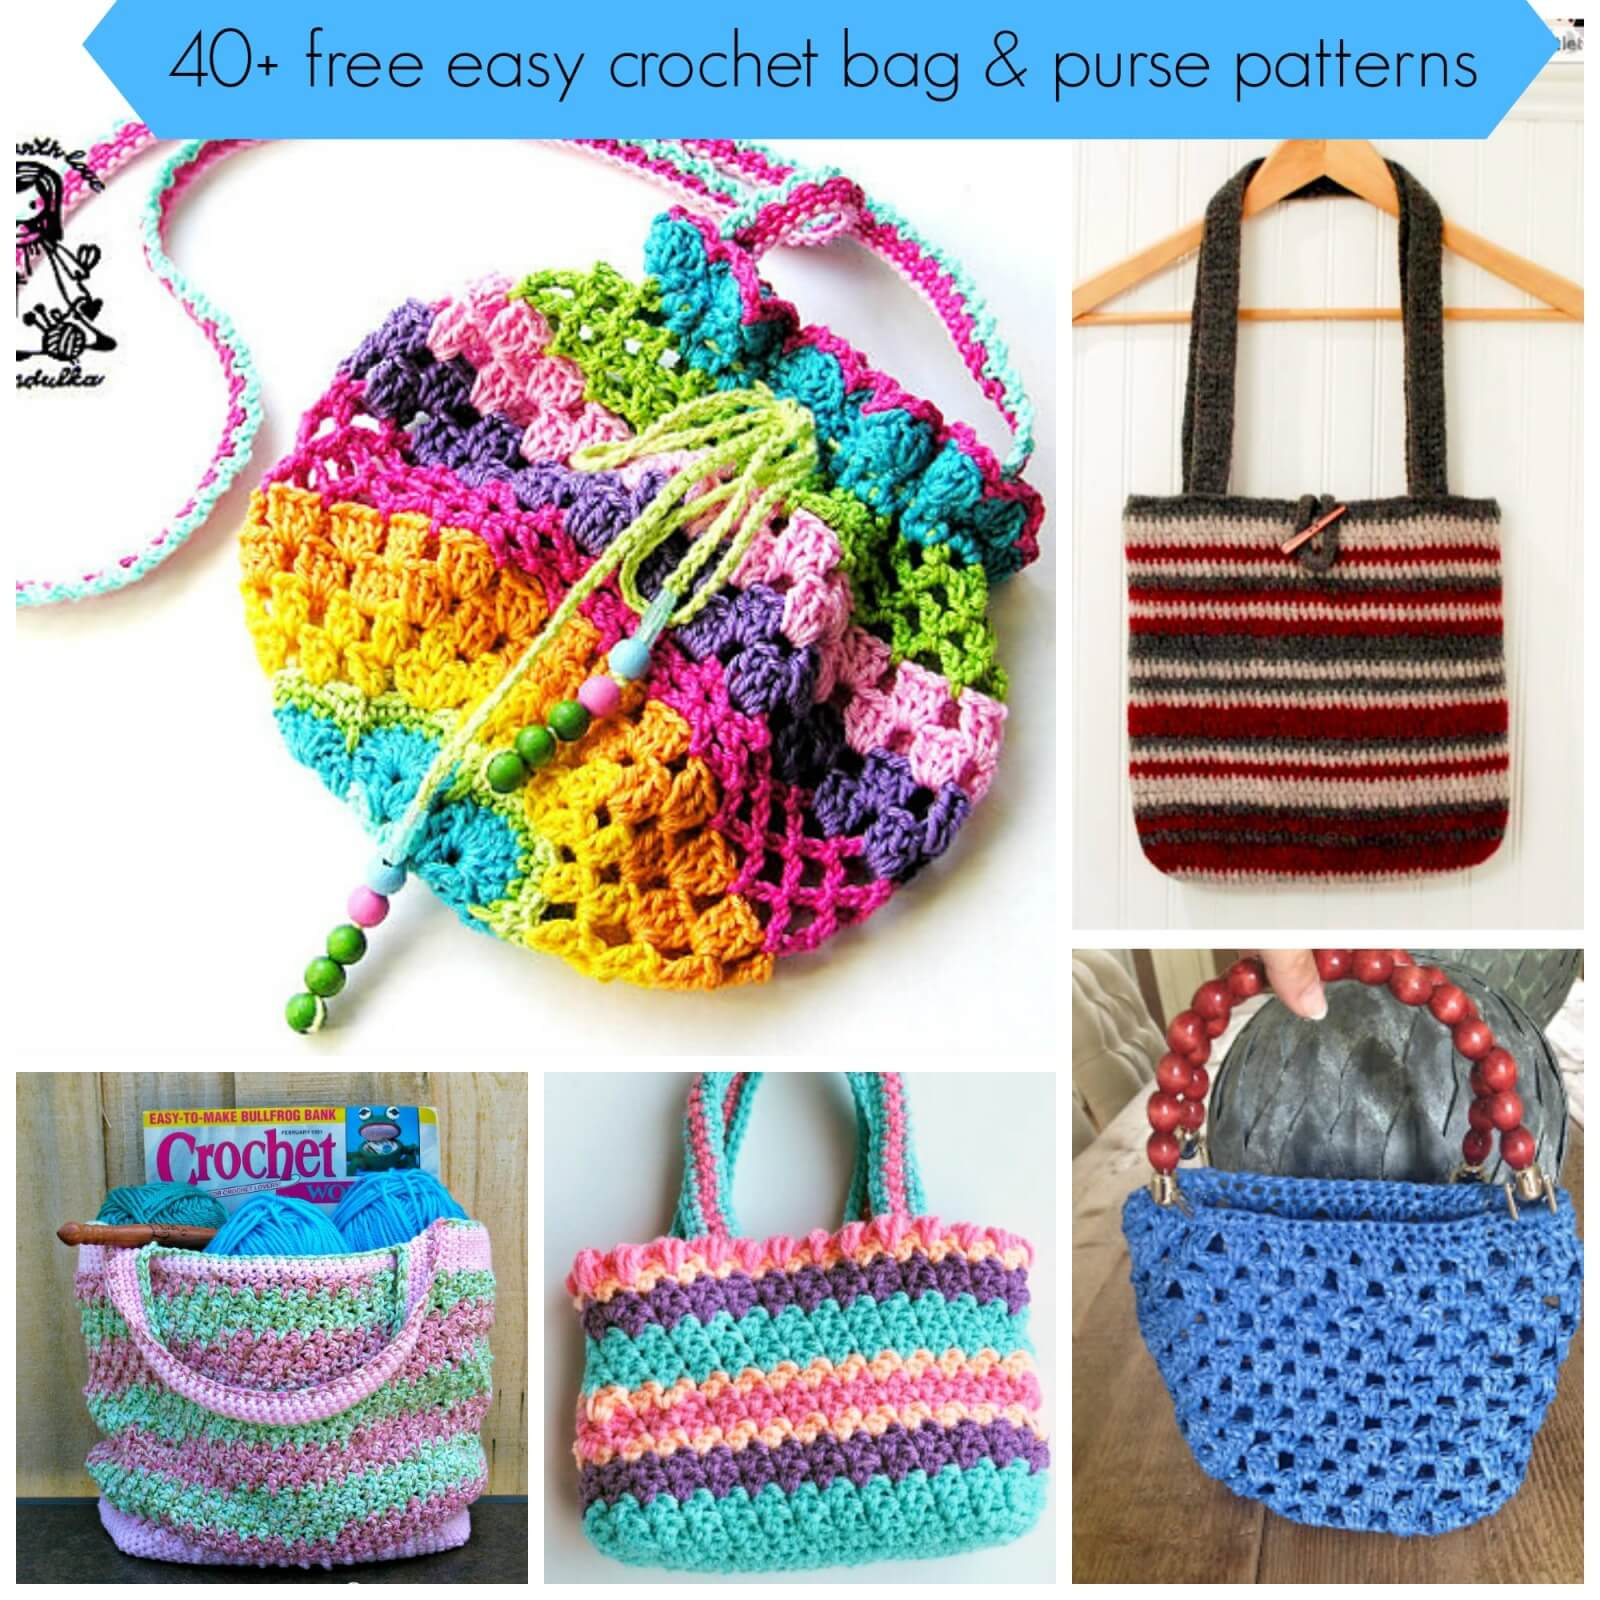 Crochet Bag Pattern Easy : 40+ free easy crochet bag & purse patterns